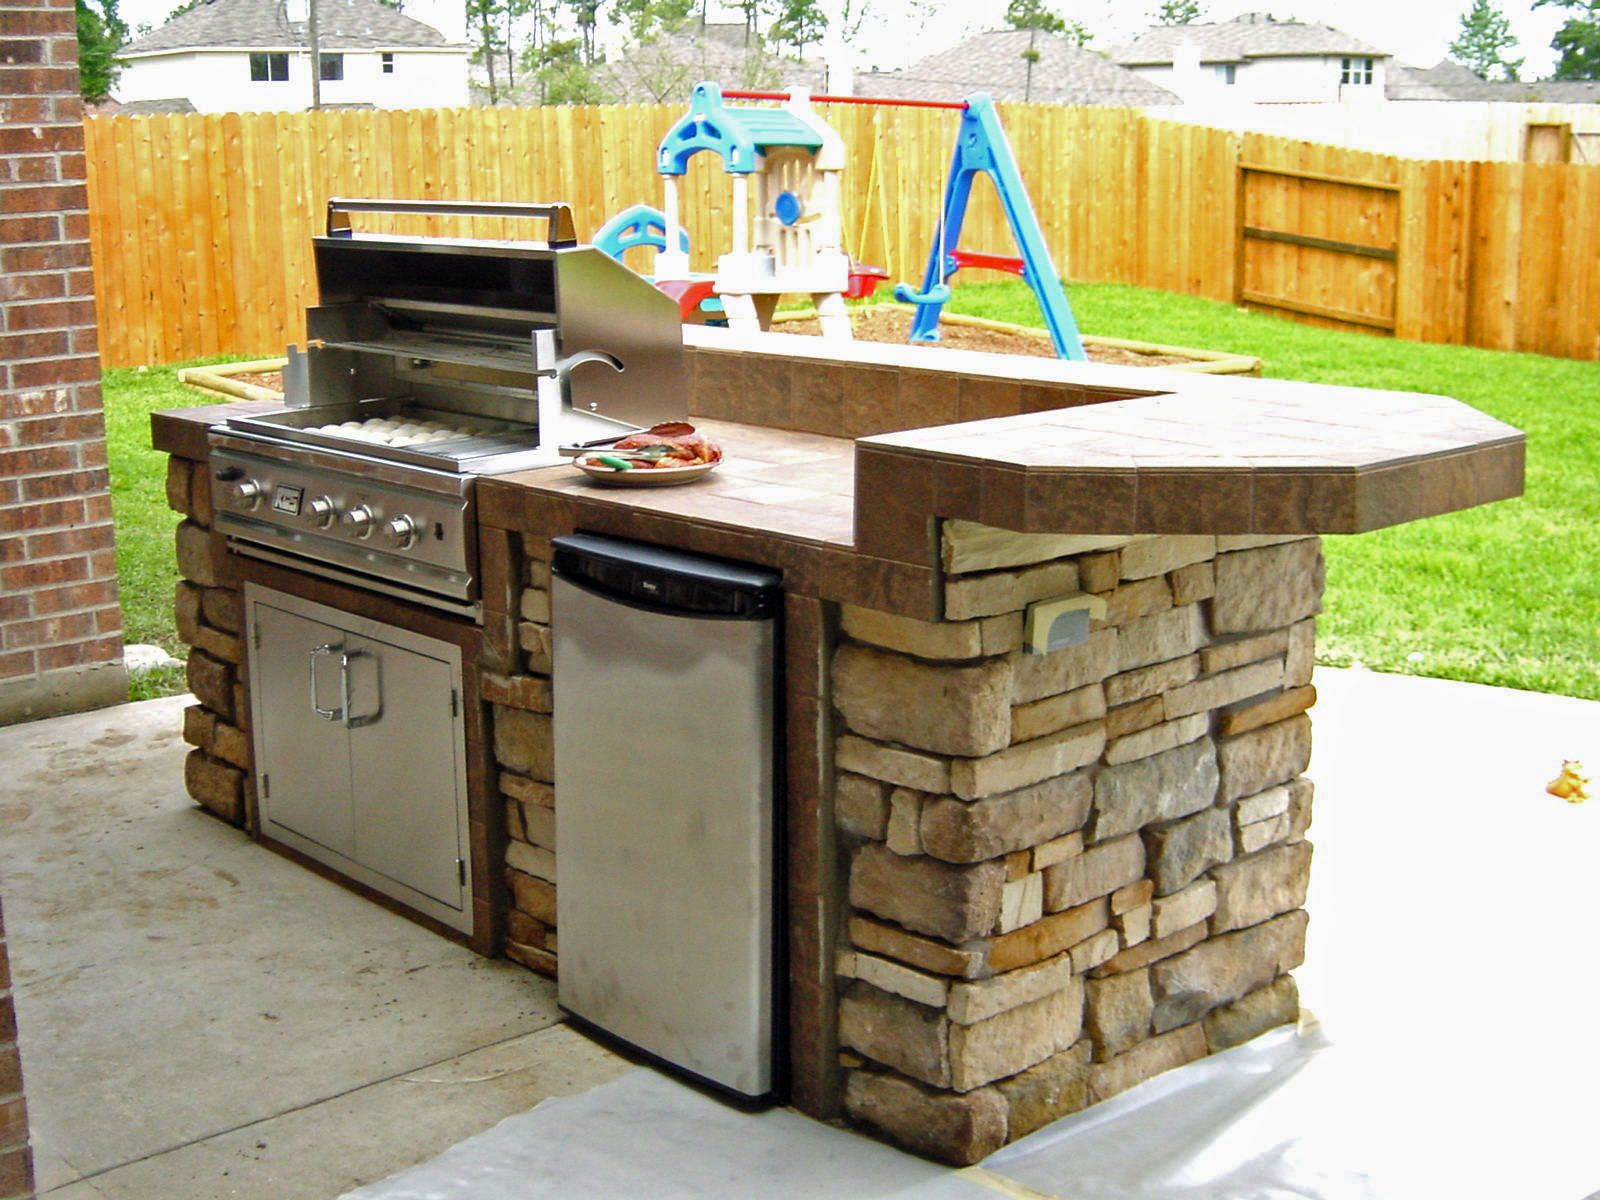 Uncategorized Backyard Kitchen Design Ideas best 25 outdoor kitchens ideas on pinterest backyard kitchen bar and grill patio